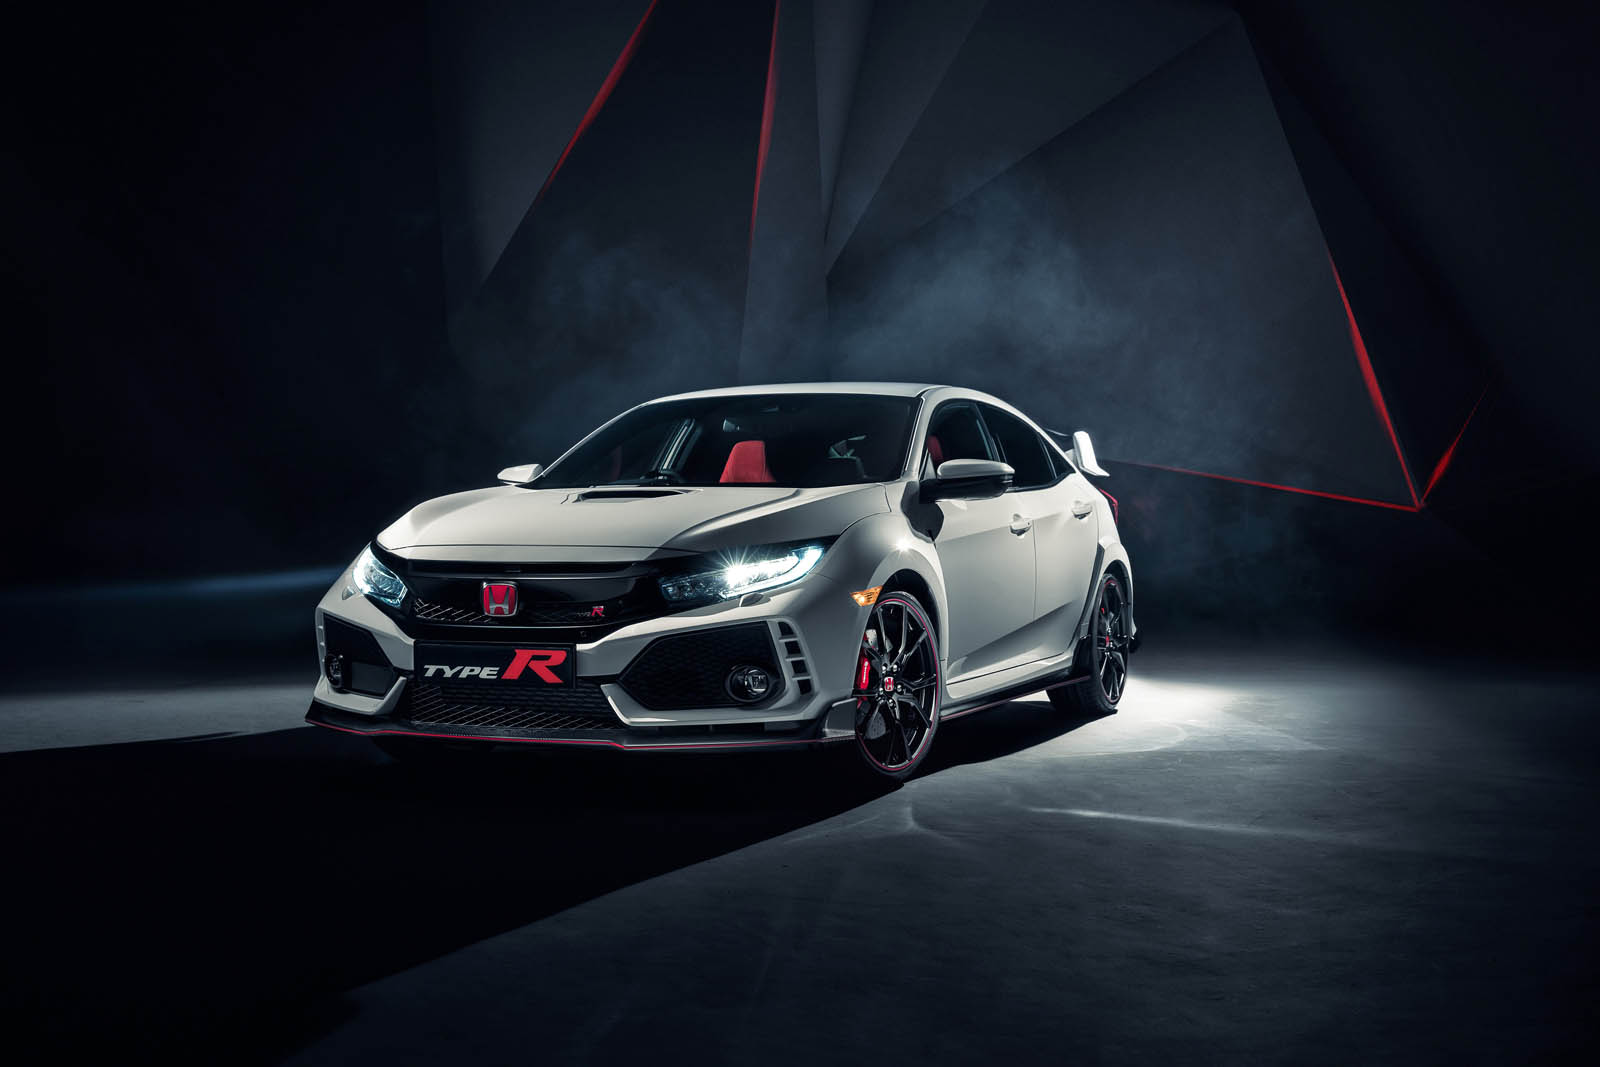 104496_All​_new_Honda​_Civic_Typ​e_R_races_​into_view_​at_Geneva%​2Bcopy